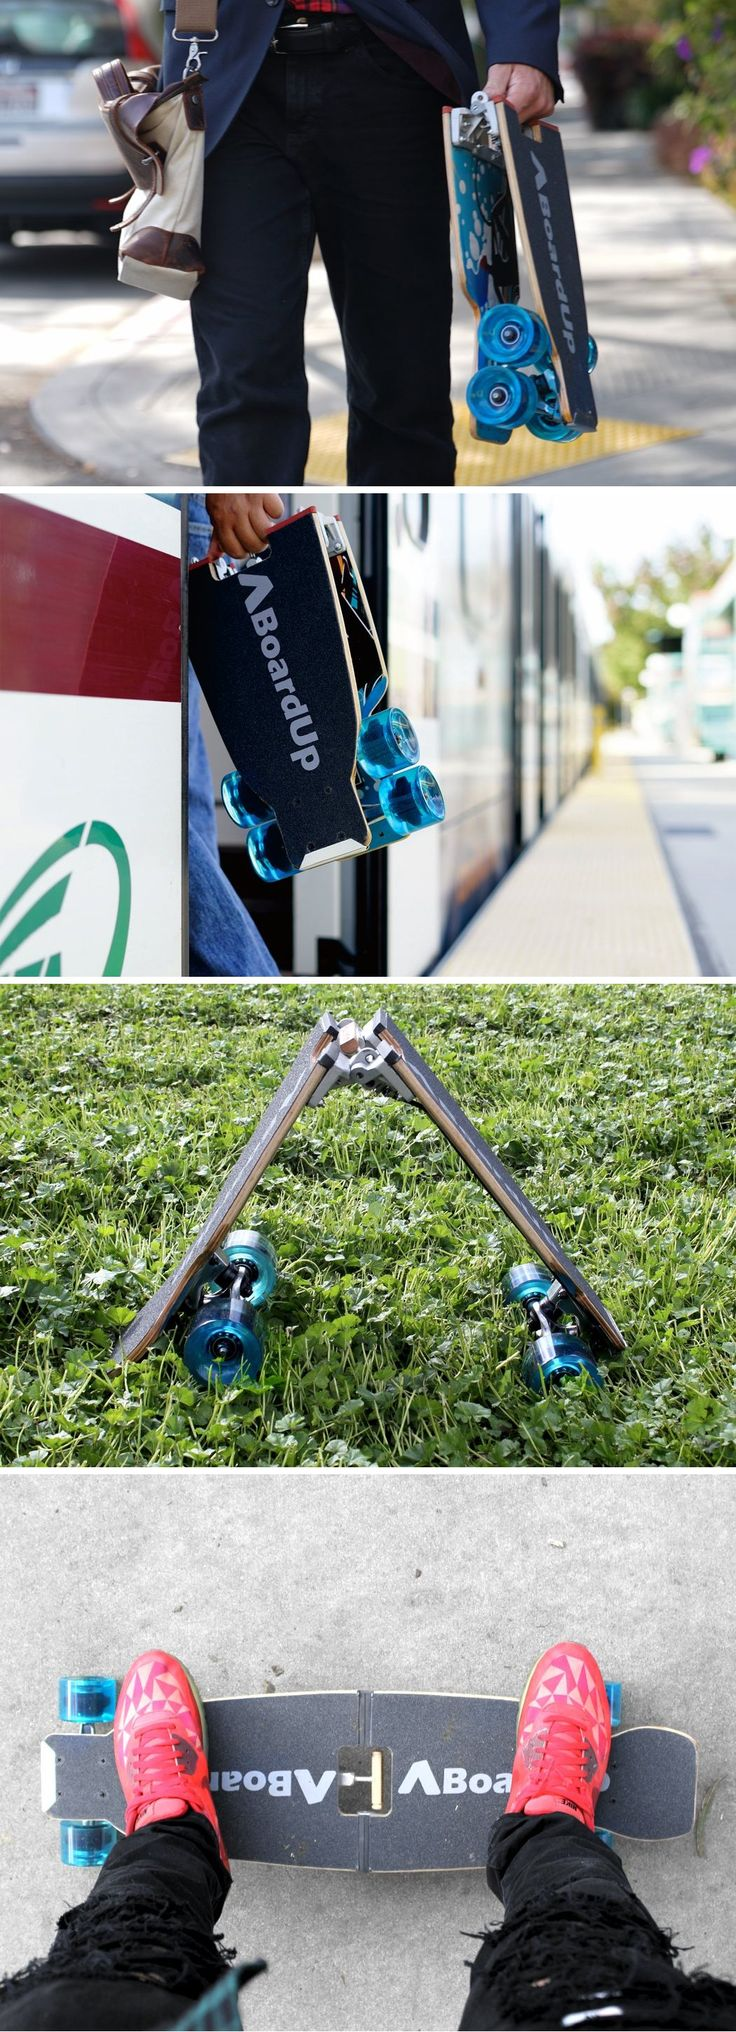 BoardUp, a foldable longboard has the footprint as a laptop, making it easy to fit even an airplane compartment.